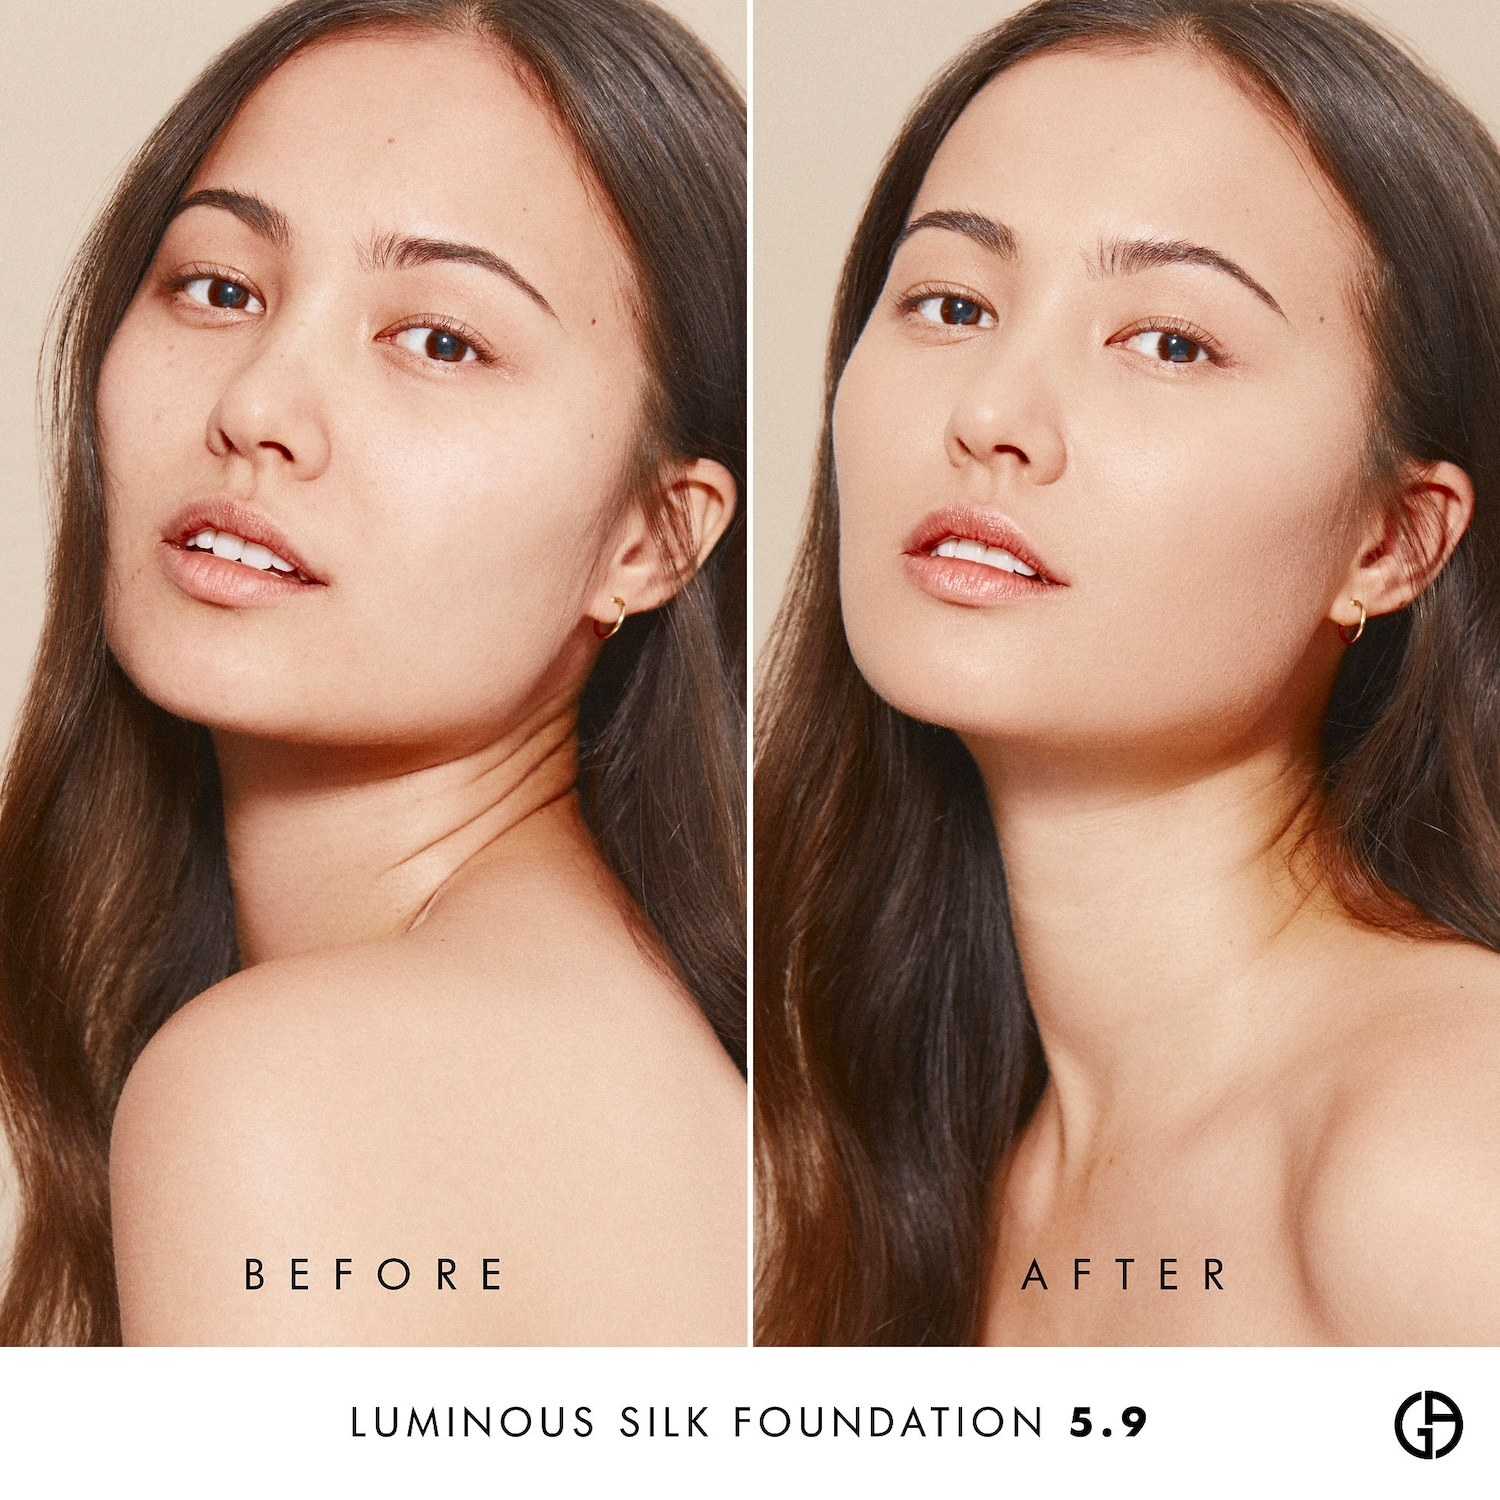 A before/after of a model with and without the foundation